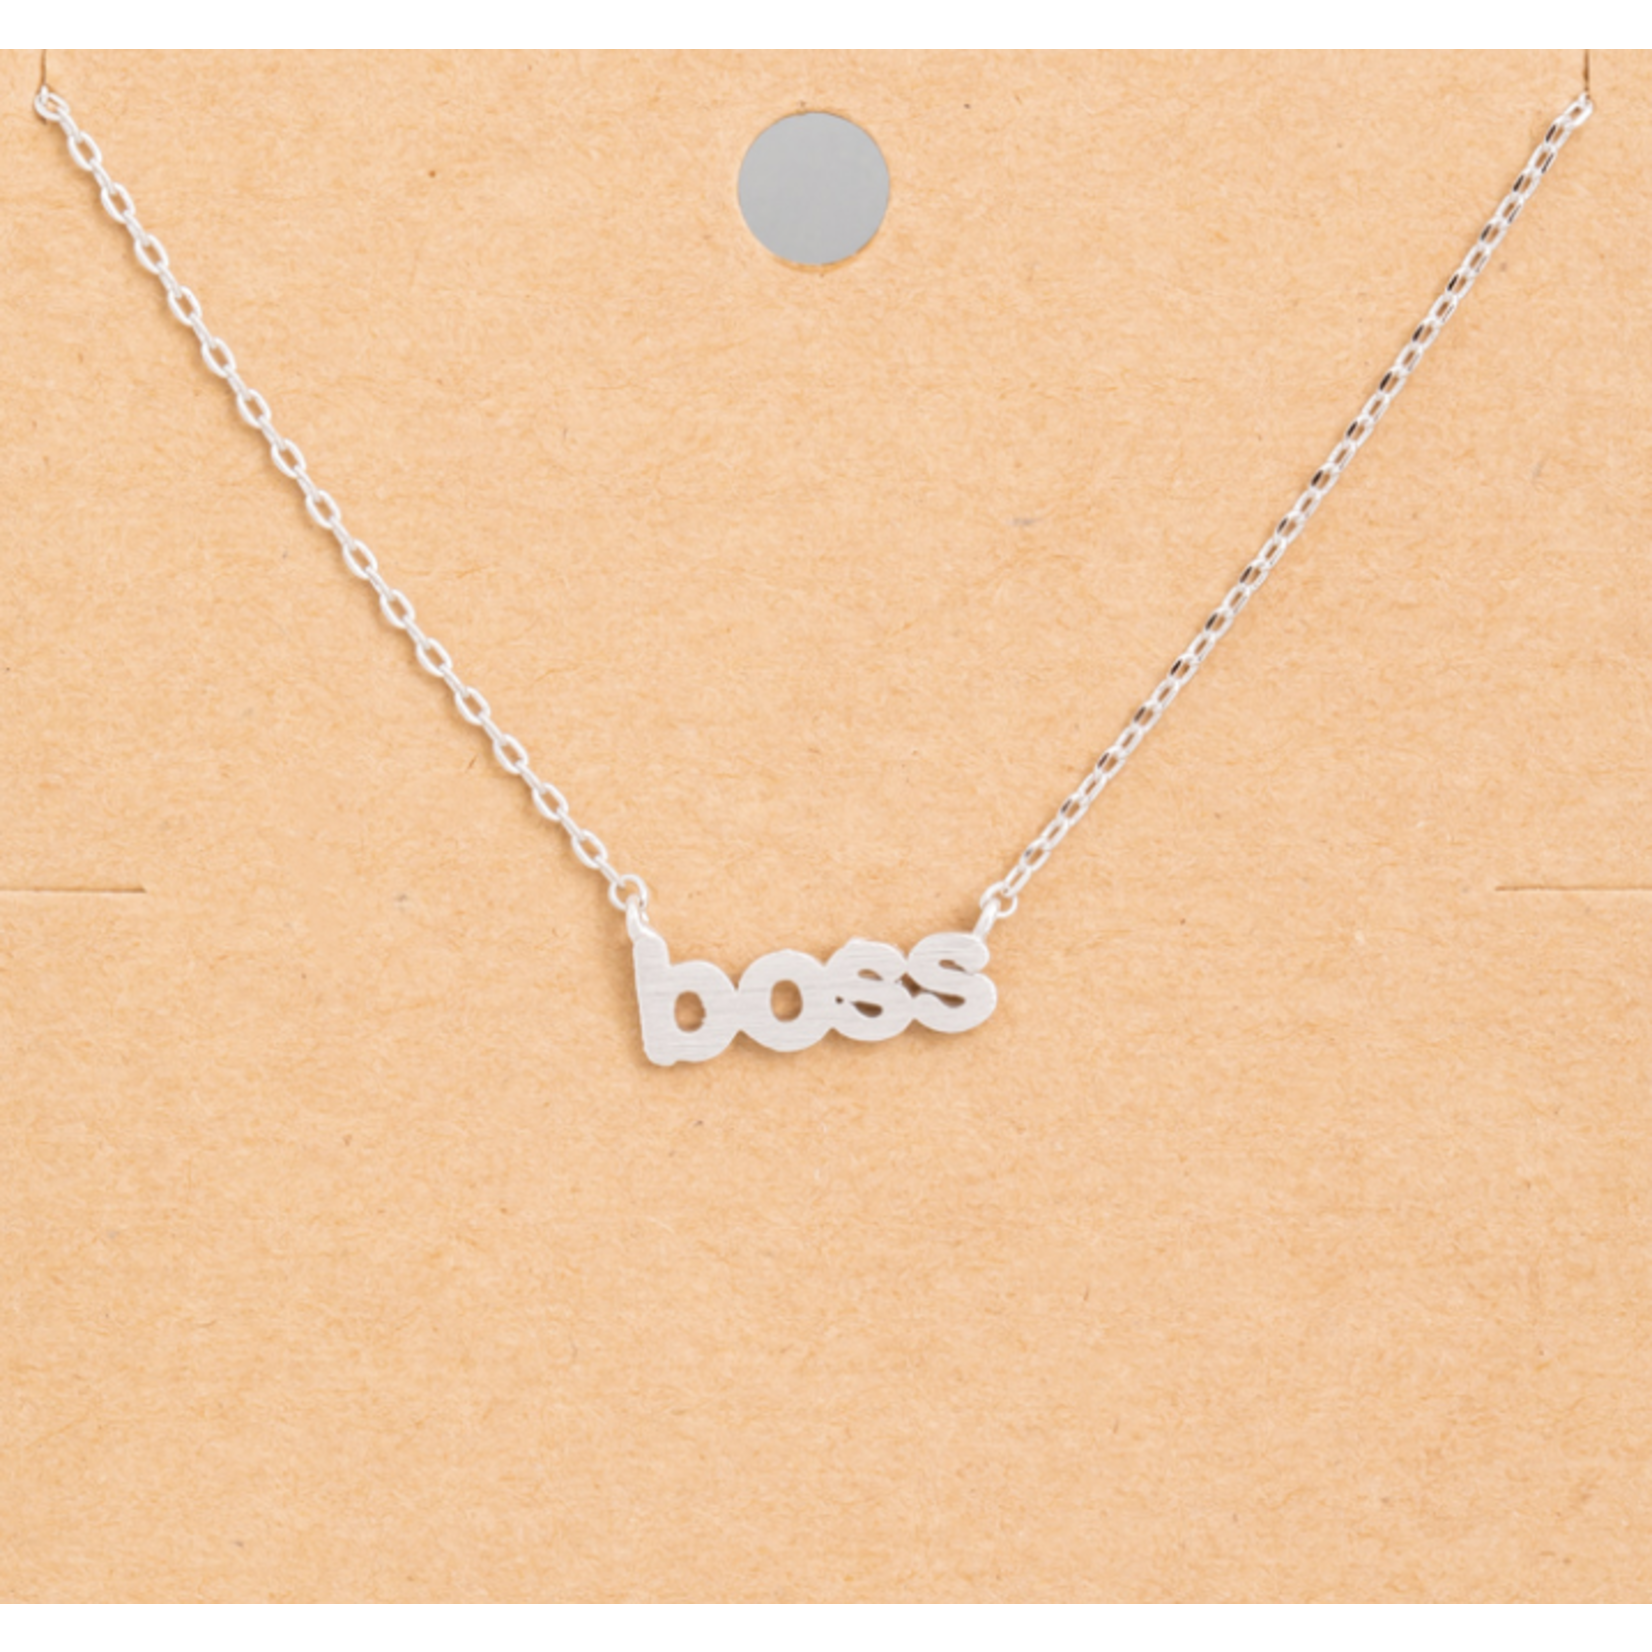 Necklace - Boss - Silver